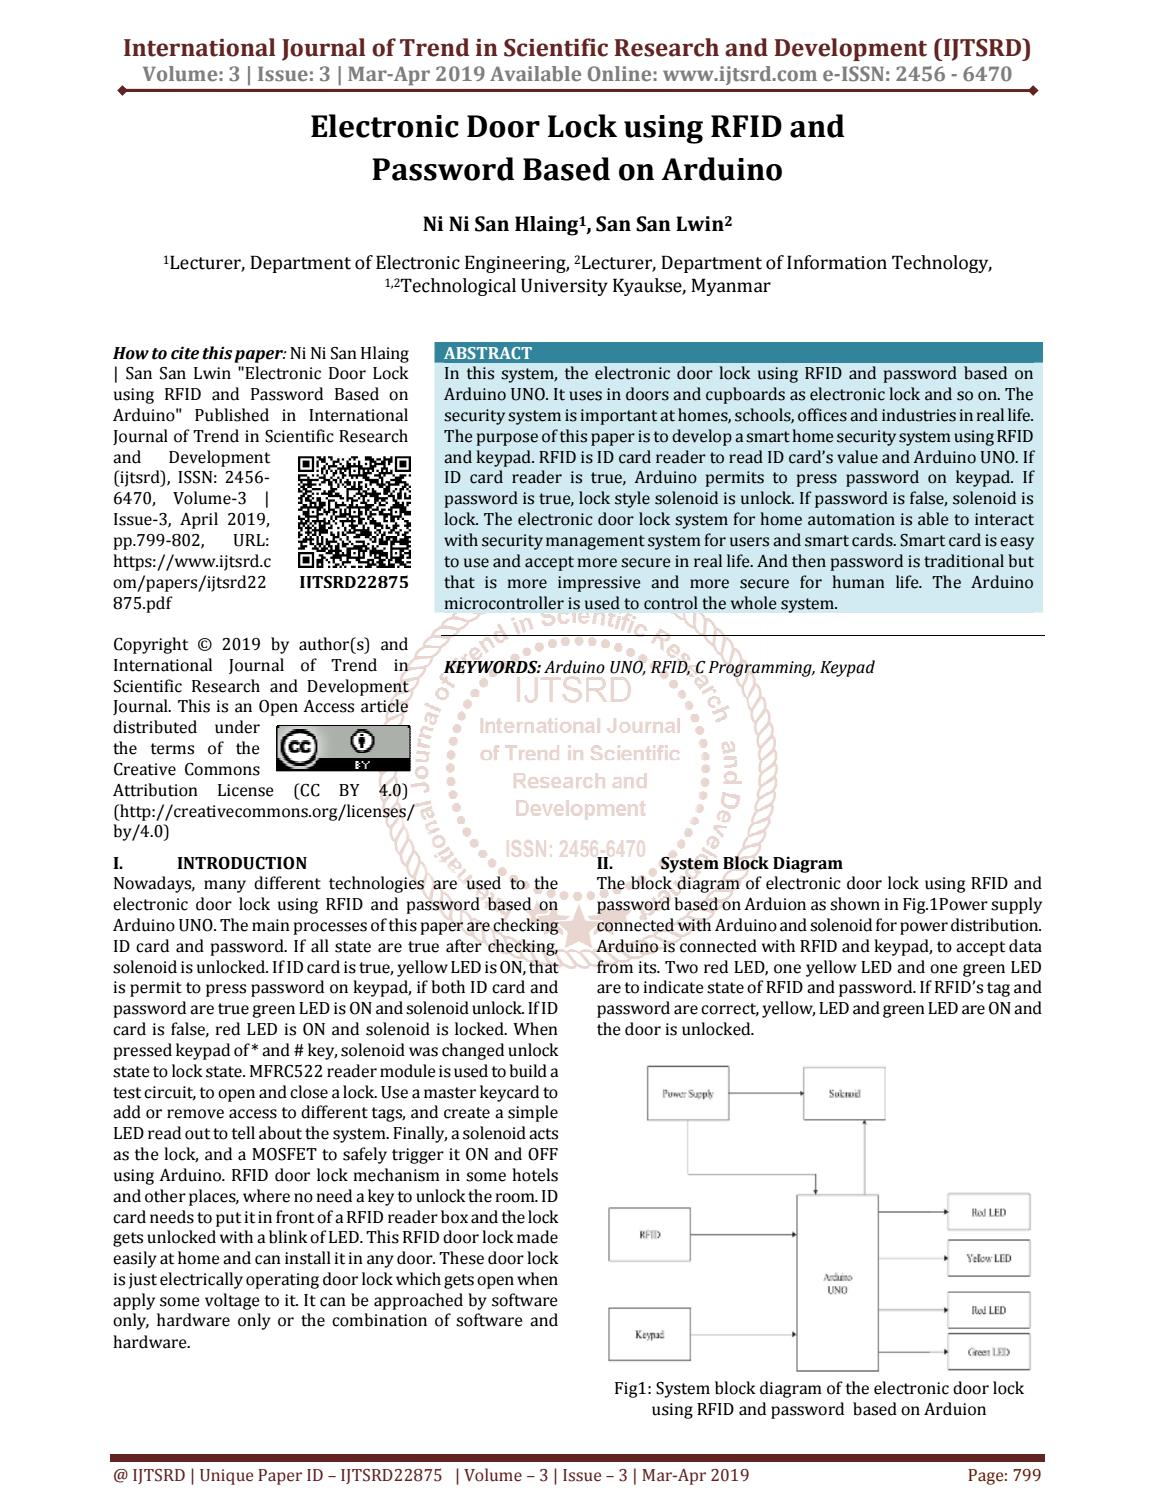 Electronic Door Lock Using Rfid And Password Based On Arduino By International Journal Of Trend In Scientific Research And Development Issn 2456 6470 Issuu